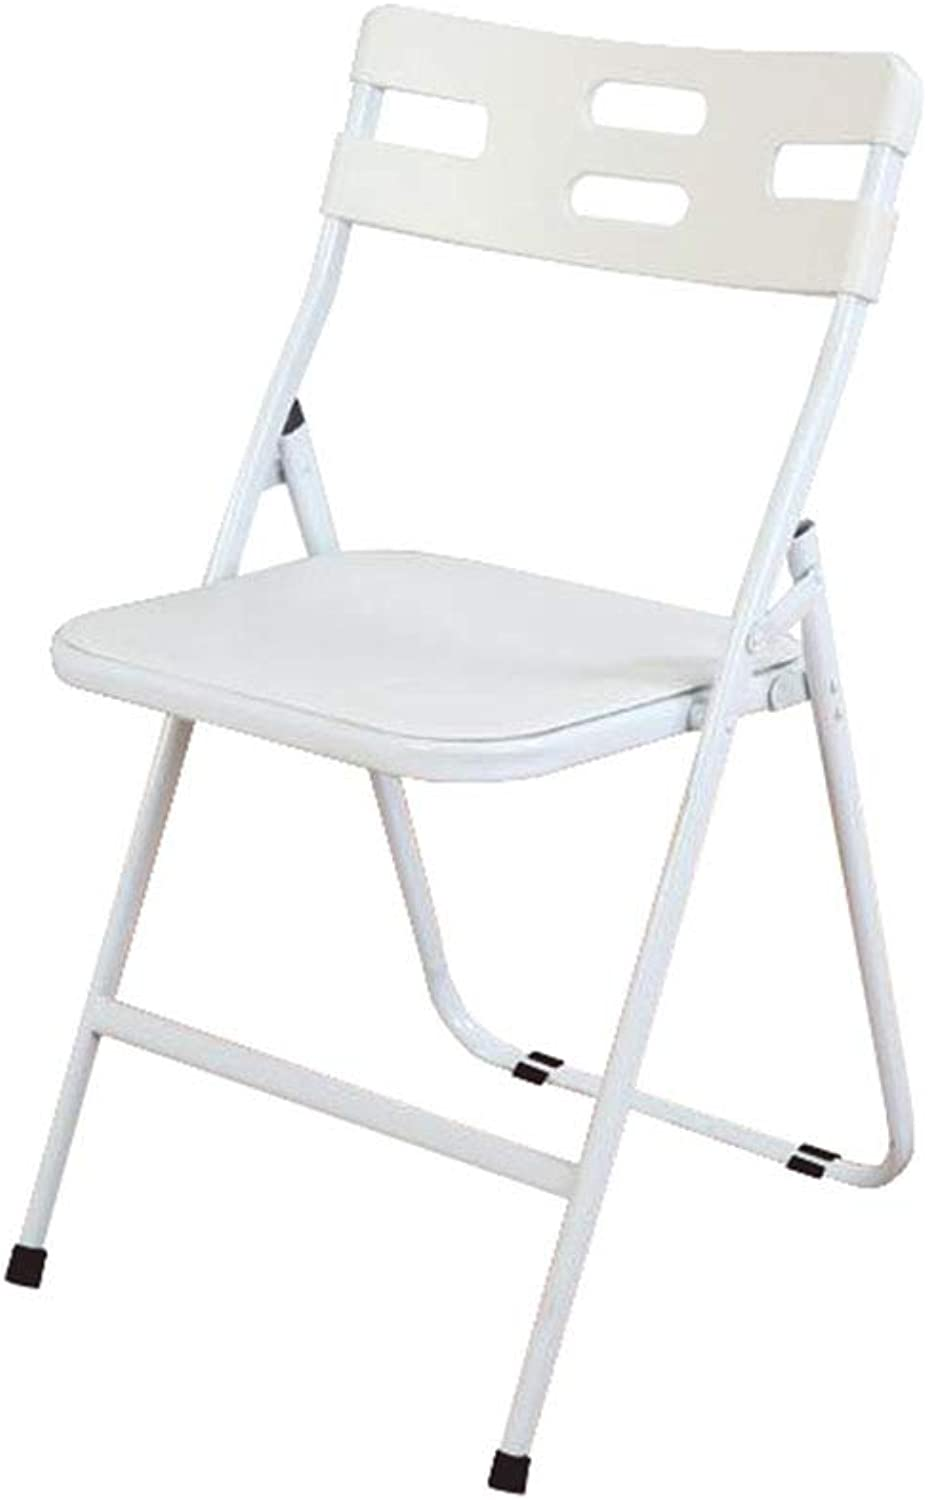 Folding Chair Office Desk Chair Staff White Plastic Padded Student Training Modern